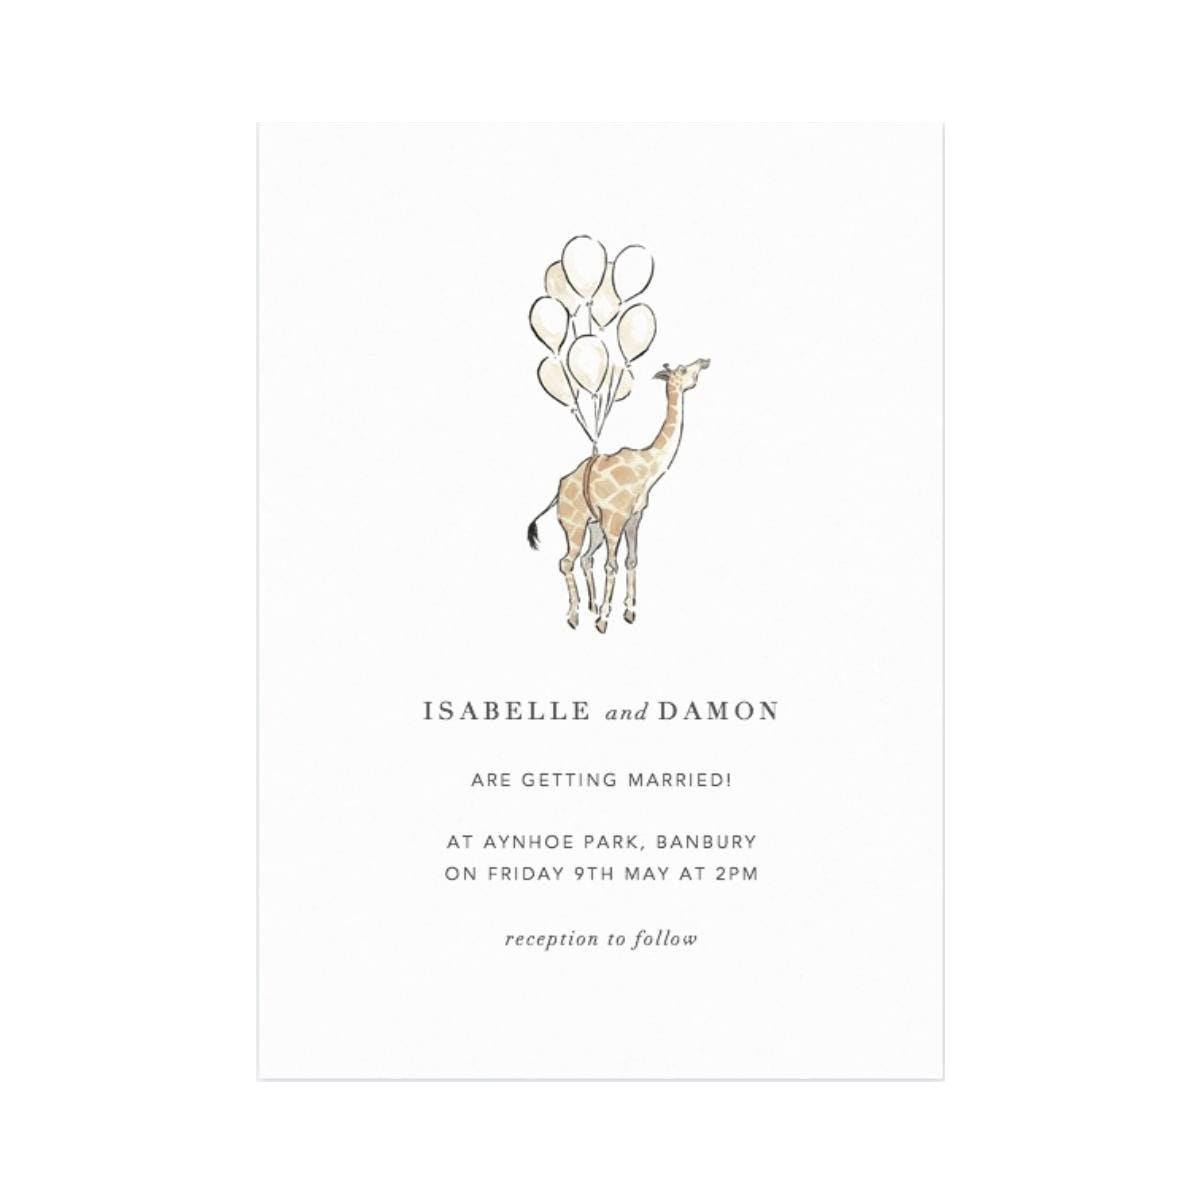 Wedding Invitations - Celebration Animals - A Modern Grand Tour